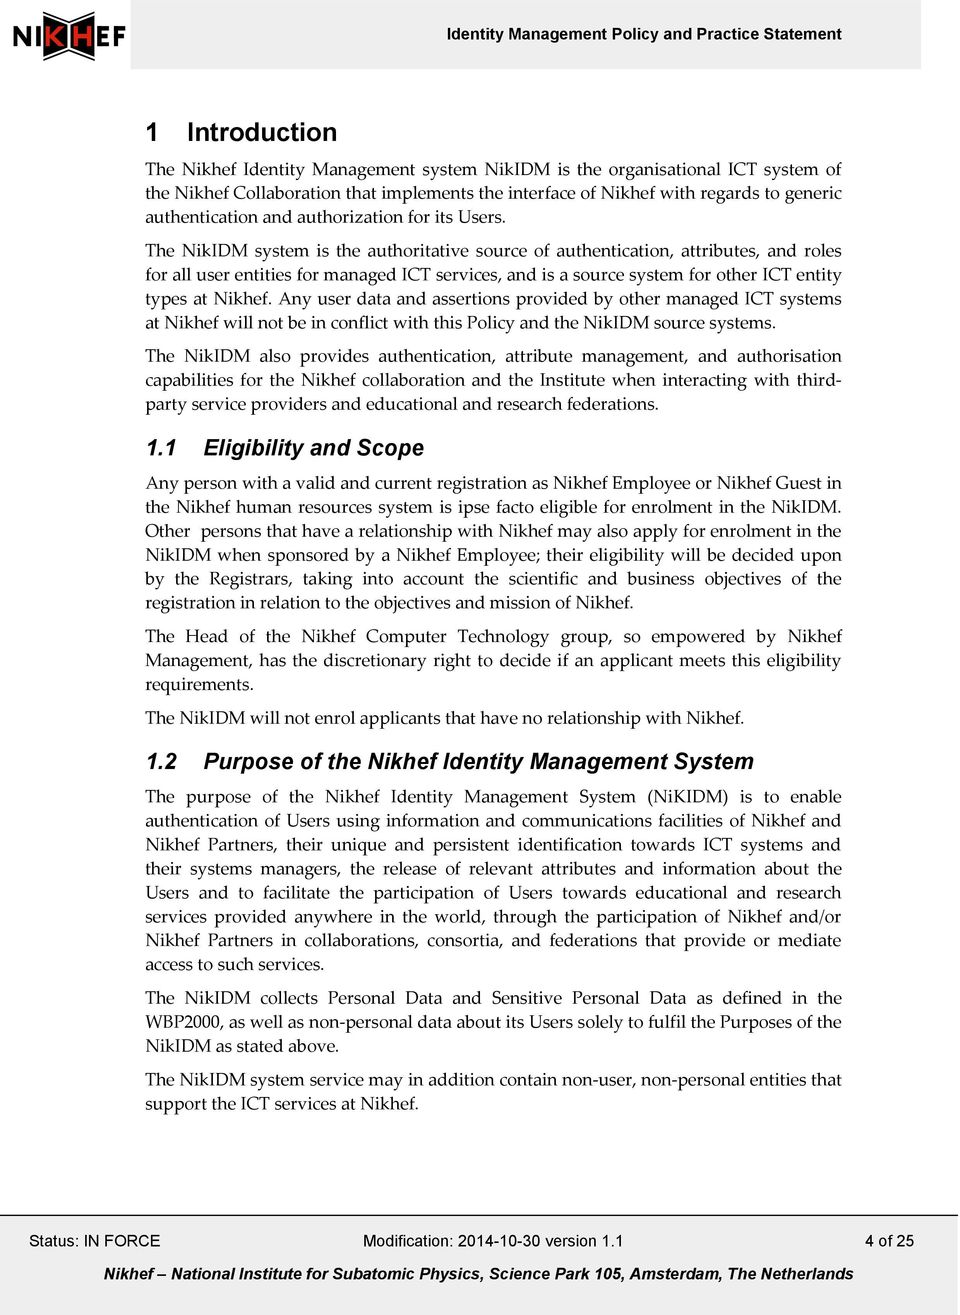 The NikIDM system is the authoritative source of authentication, attributes, and roles for all user entities for managed ICT services, and is a source system for other ICT entity types at Nikhef.